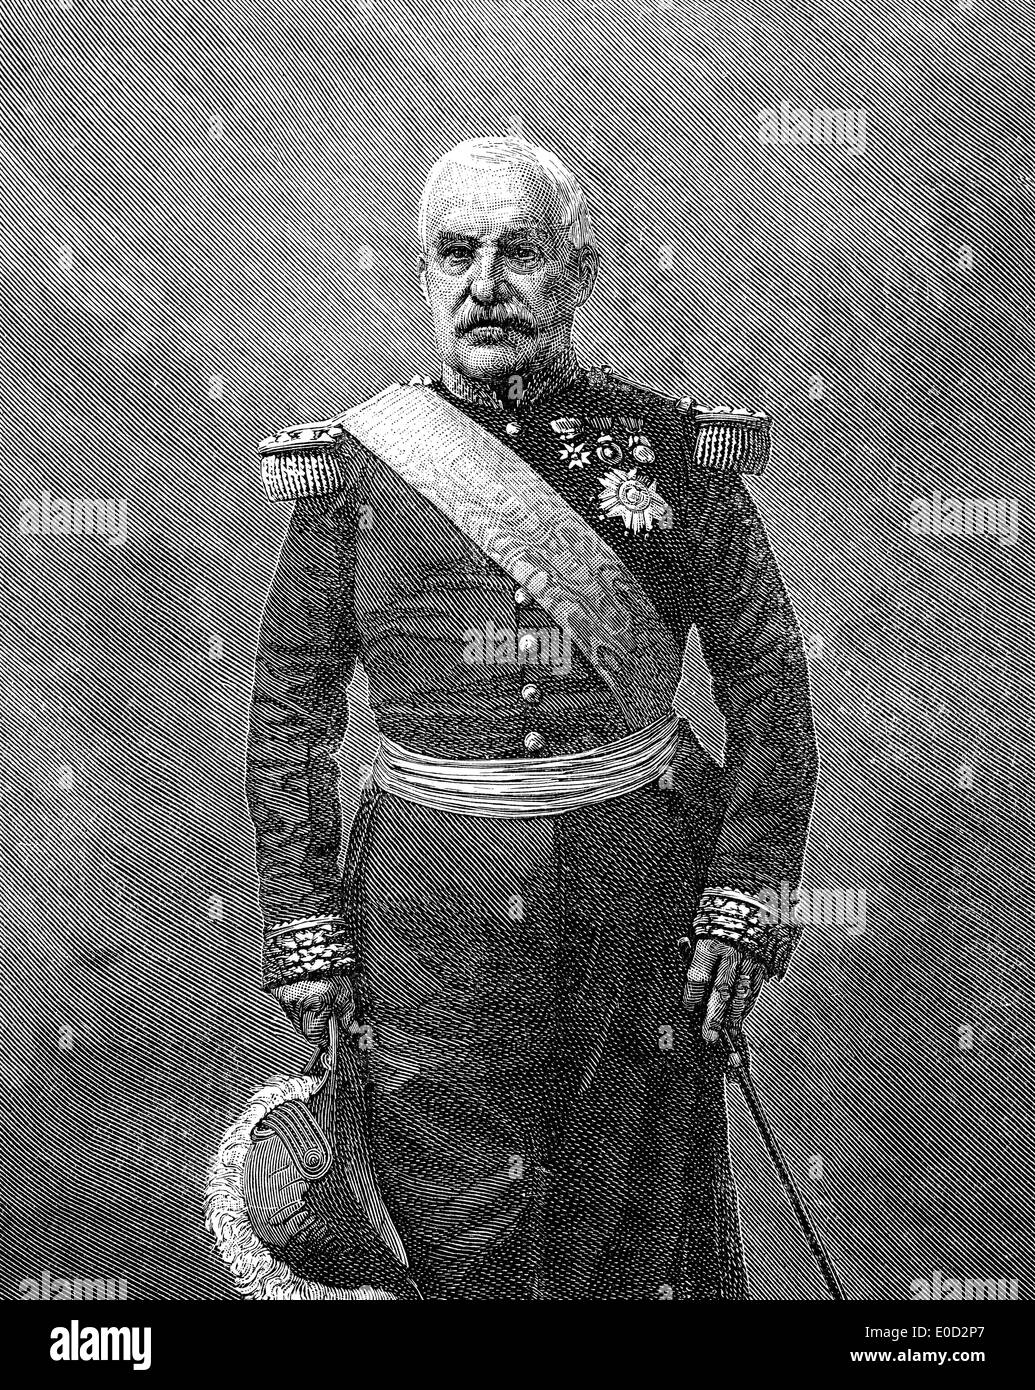 Aimable Jean Jacques Pélissier, 1st Duc de Malakoff , 1794-1864, a marshal of France - Stock Image